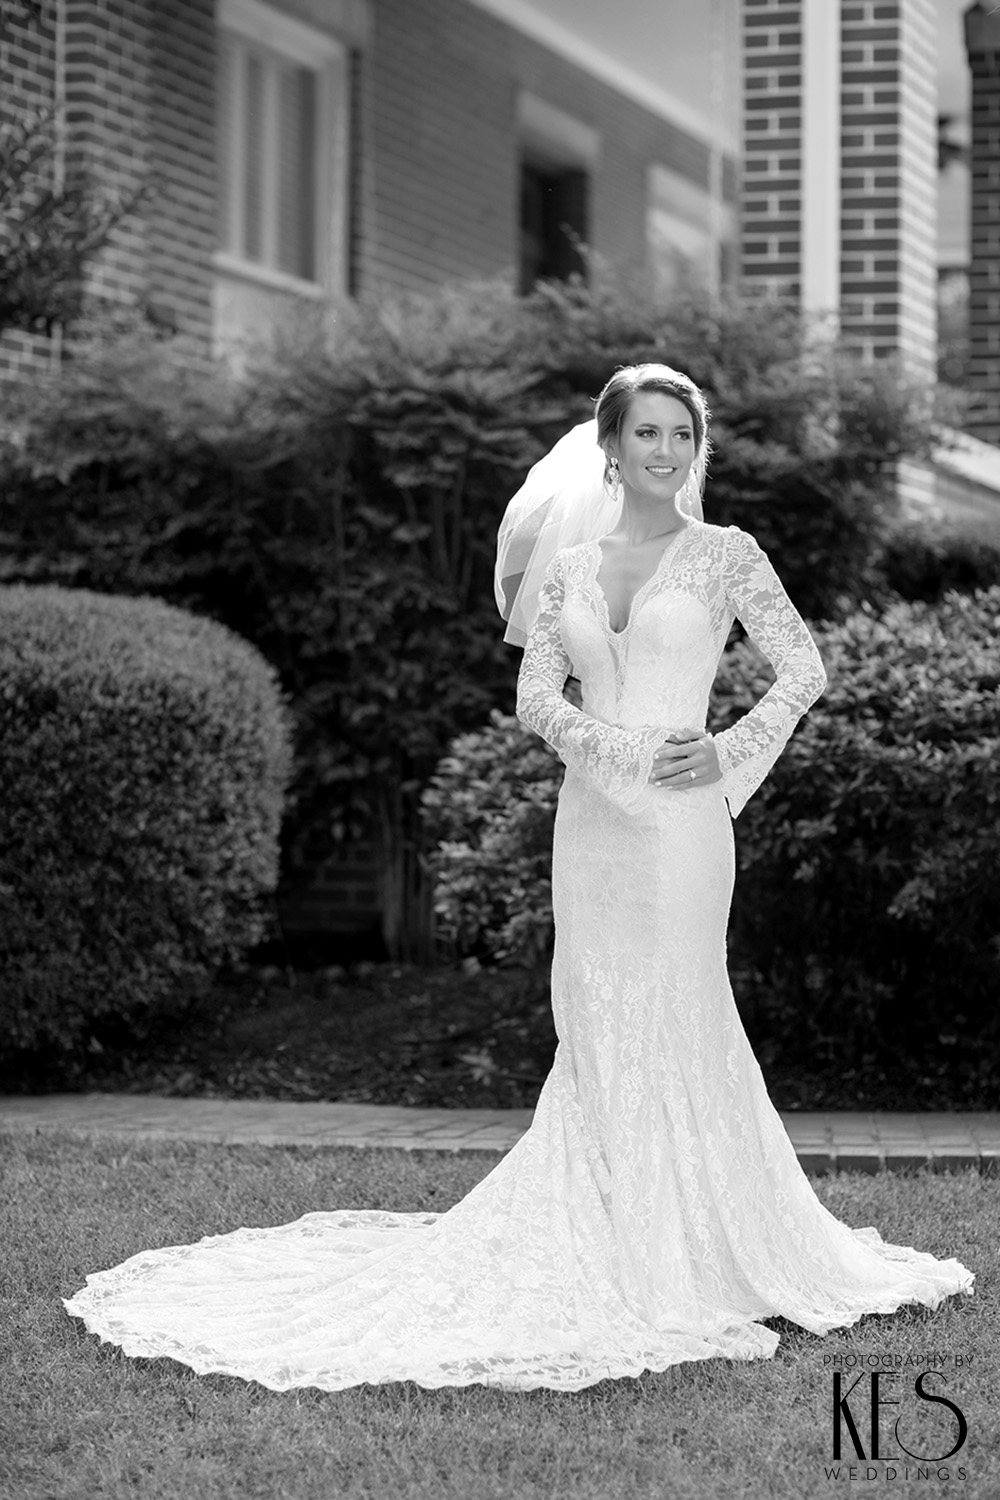 Andria_Bridals_Jonesboro_KES_Weddings_4.JPG